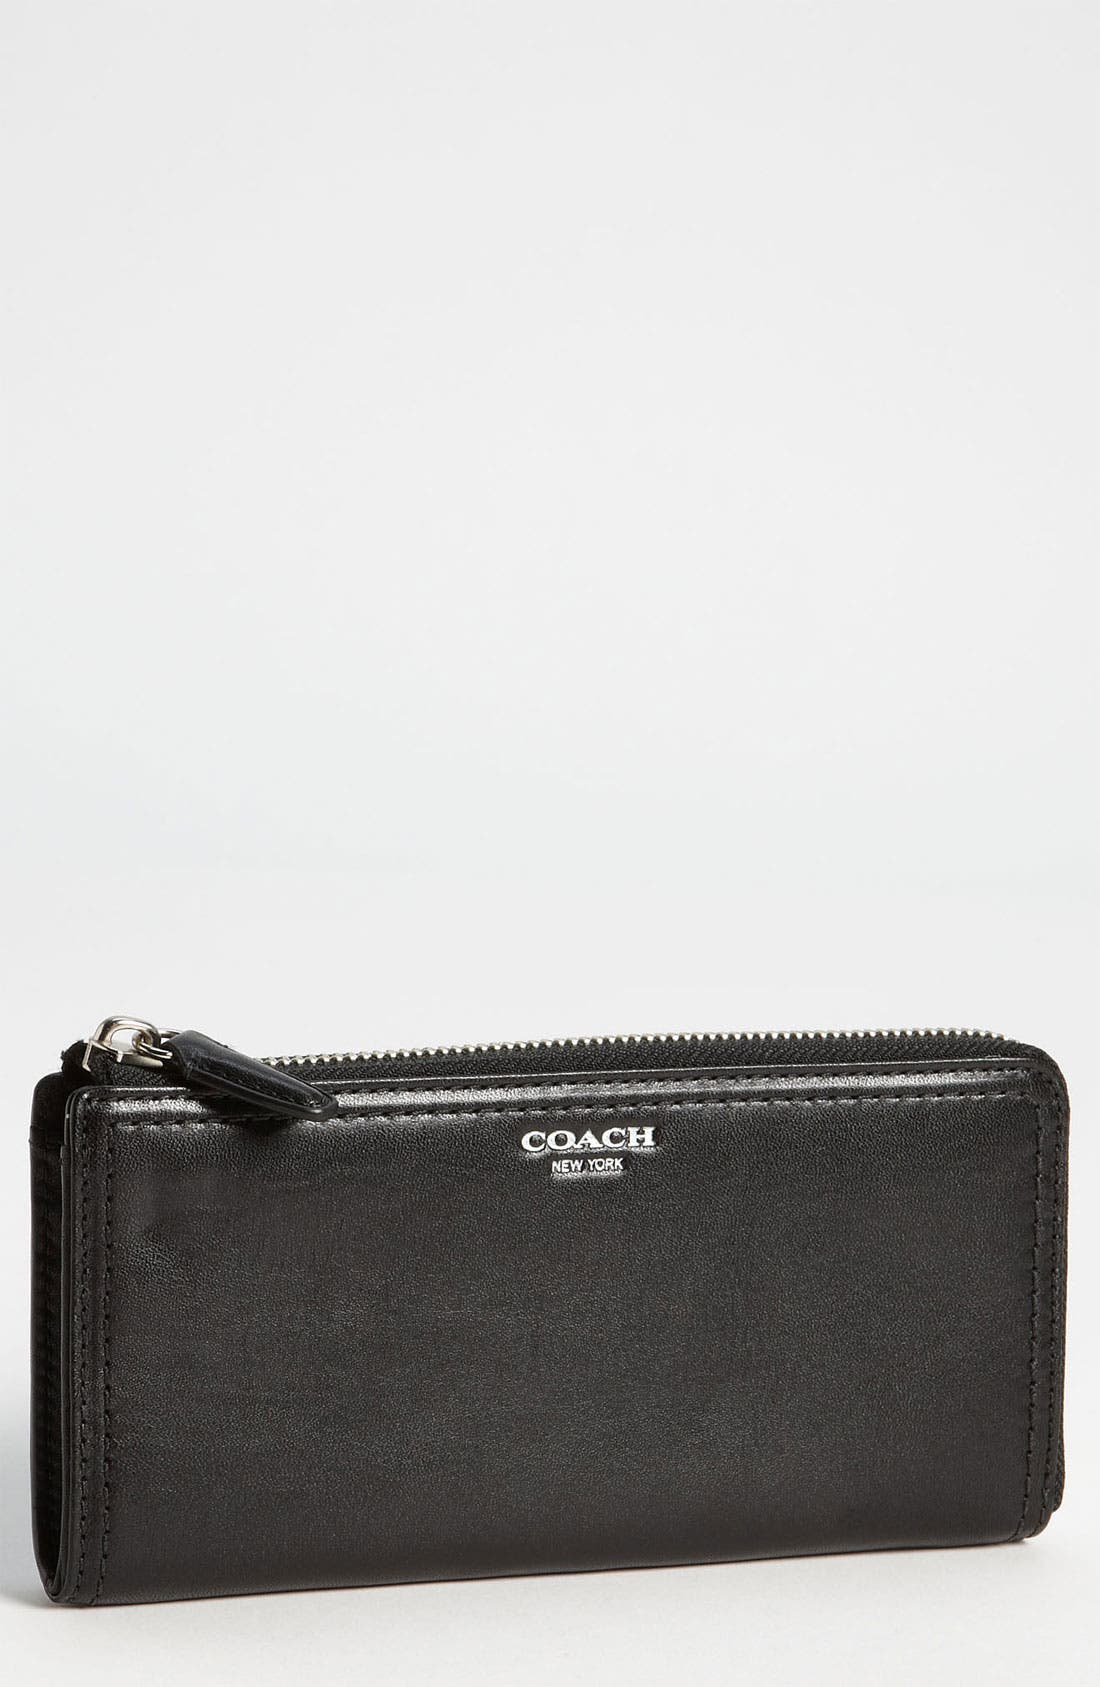 Main Image - COACH 'Legacy' Leather Wallet